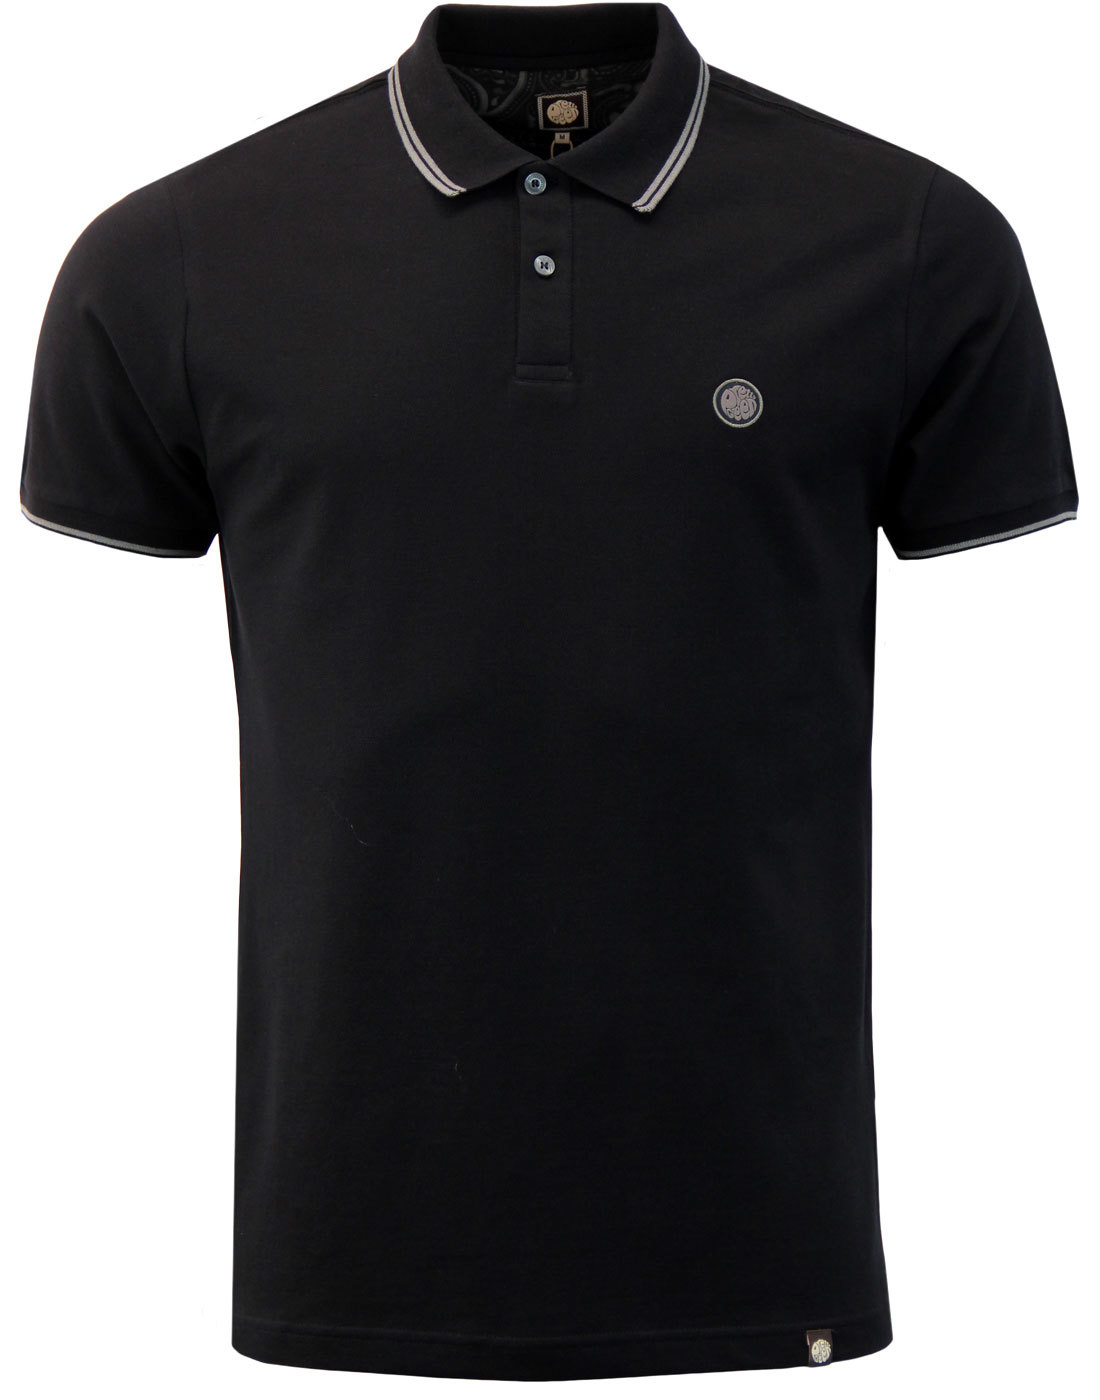 PRETTY GREEN Barton Mod Tipped Pique Polo (Black)